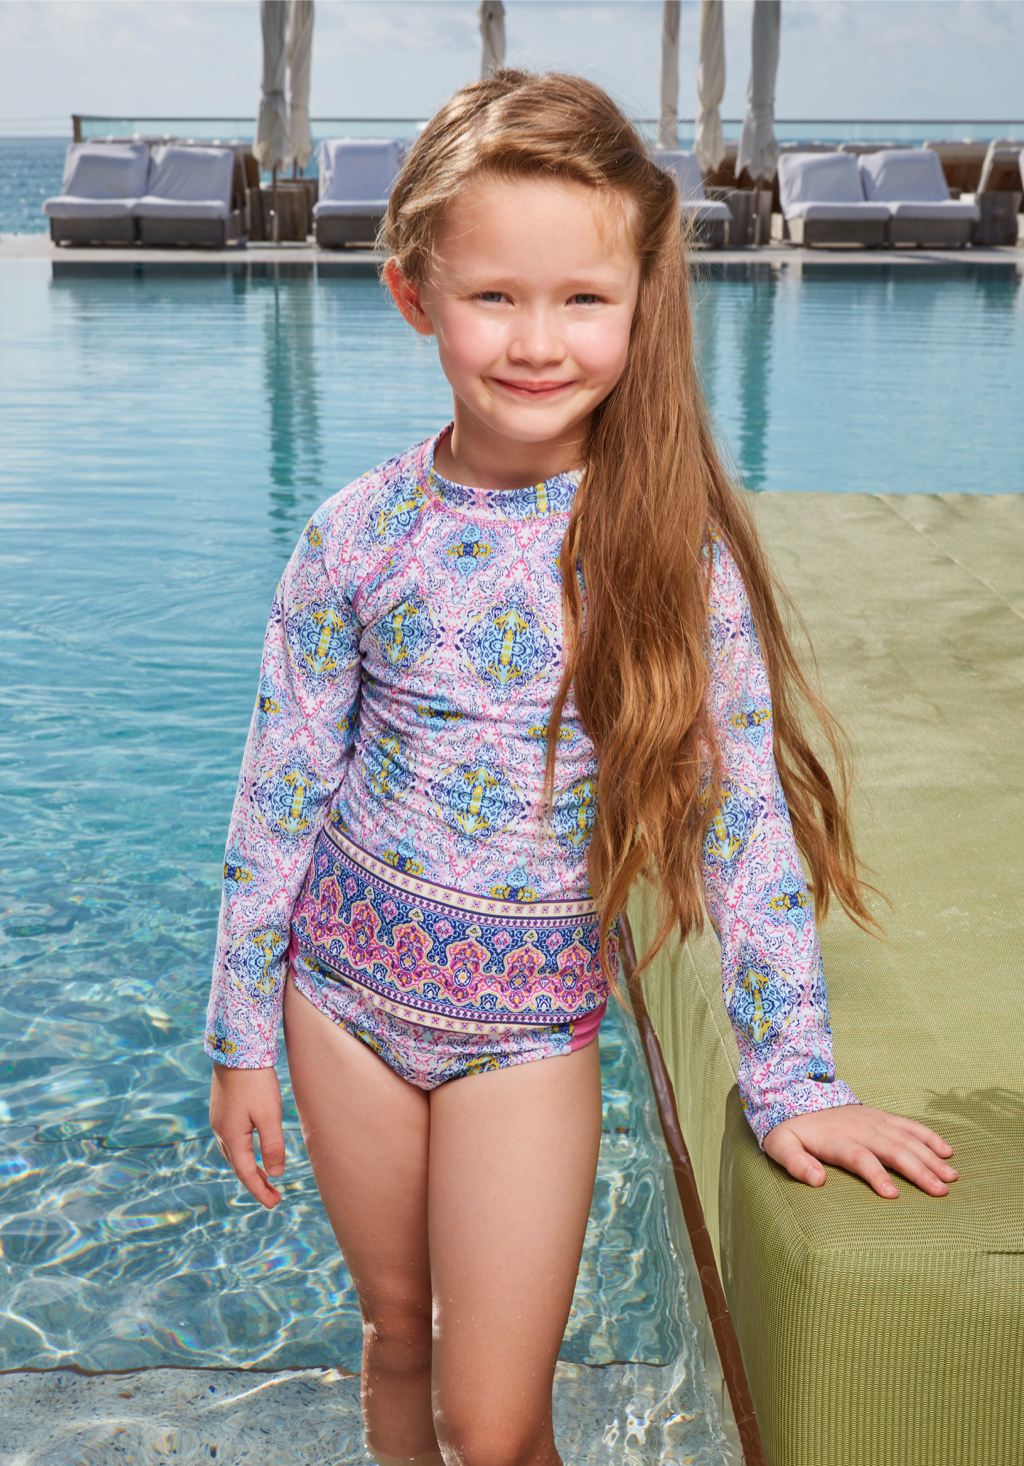 Little-Girls-Rashguard-Sets_Cabana-Life_Bora-Bora-Rashguard-Set-1.jpg